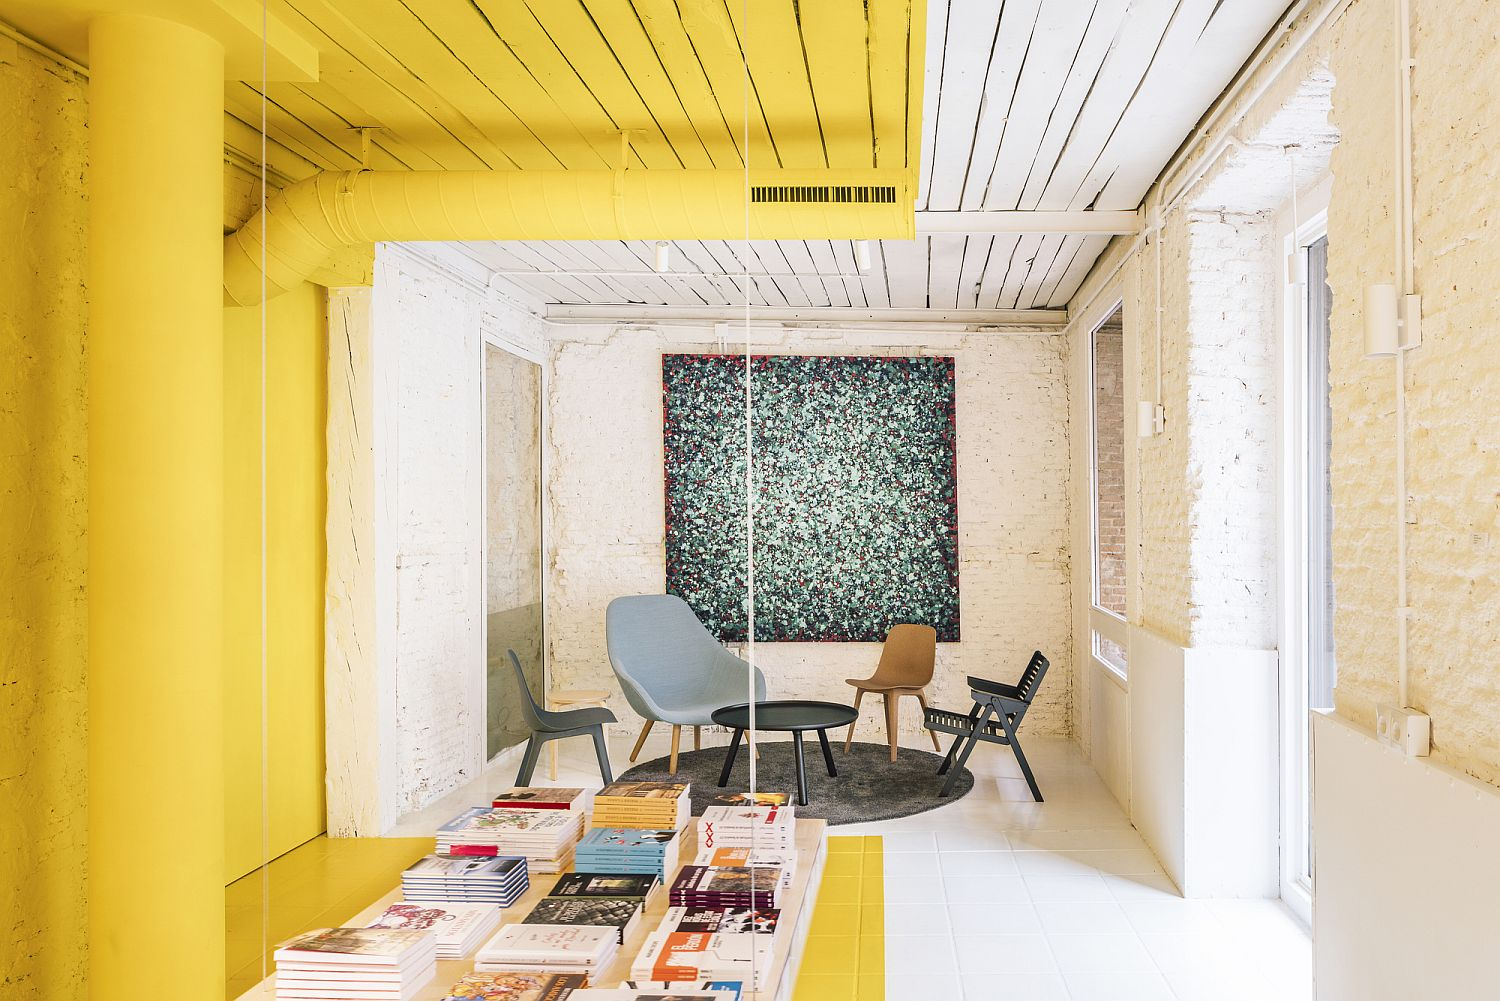 1562236172 676 amazing use of yellow for office interior meeting space in madrid - Amazing Use of Yellow for Office Interior: Meeting Space in Madrid